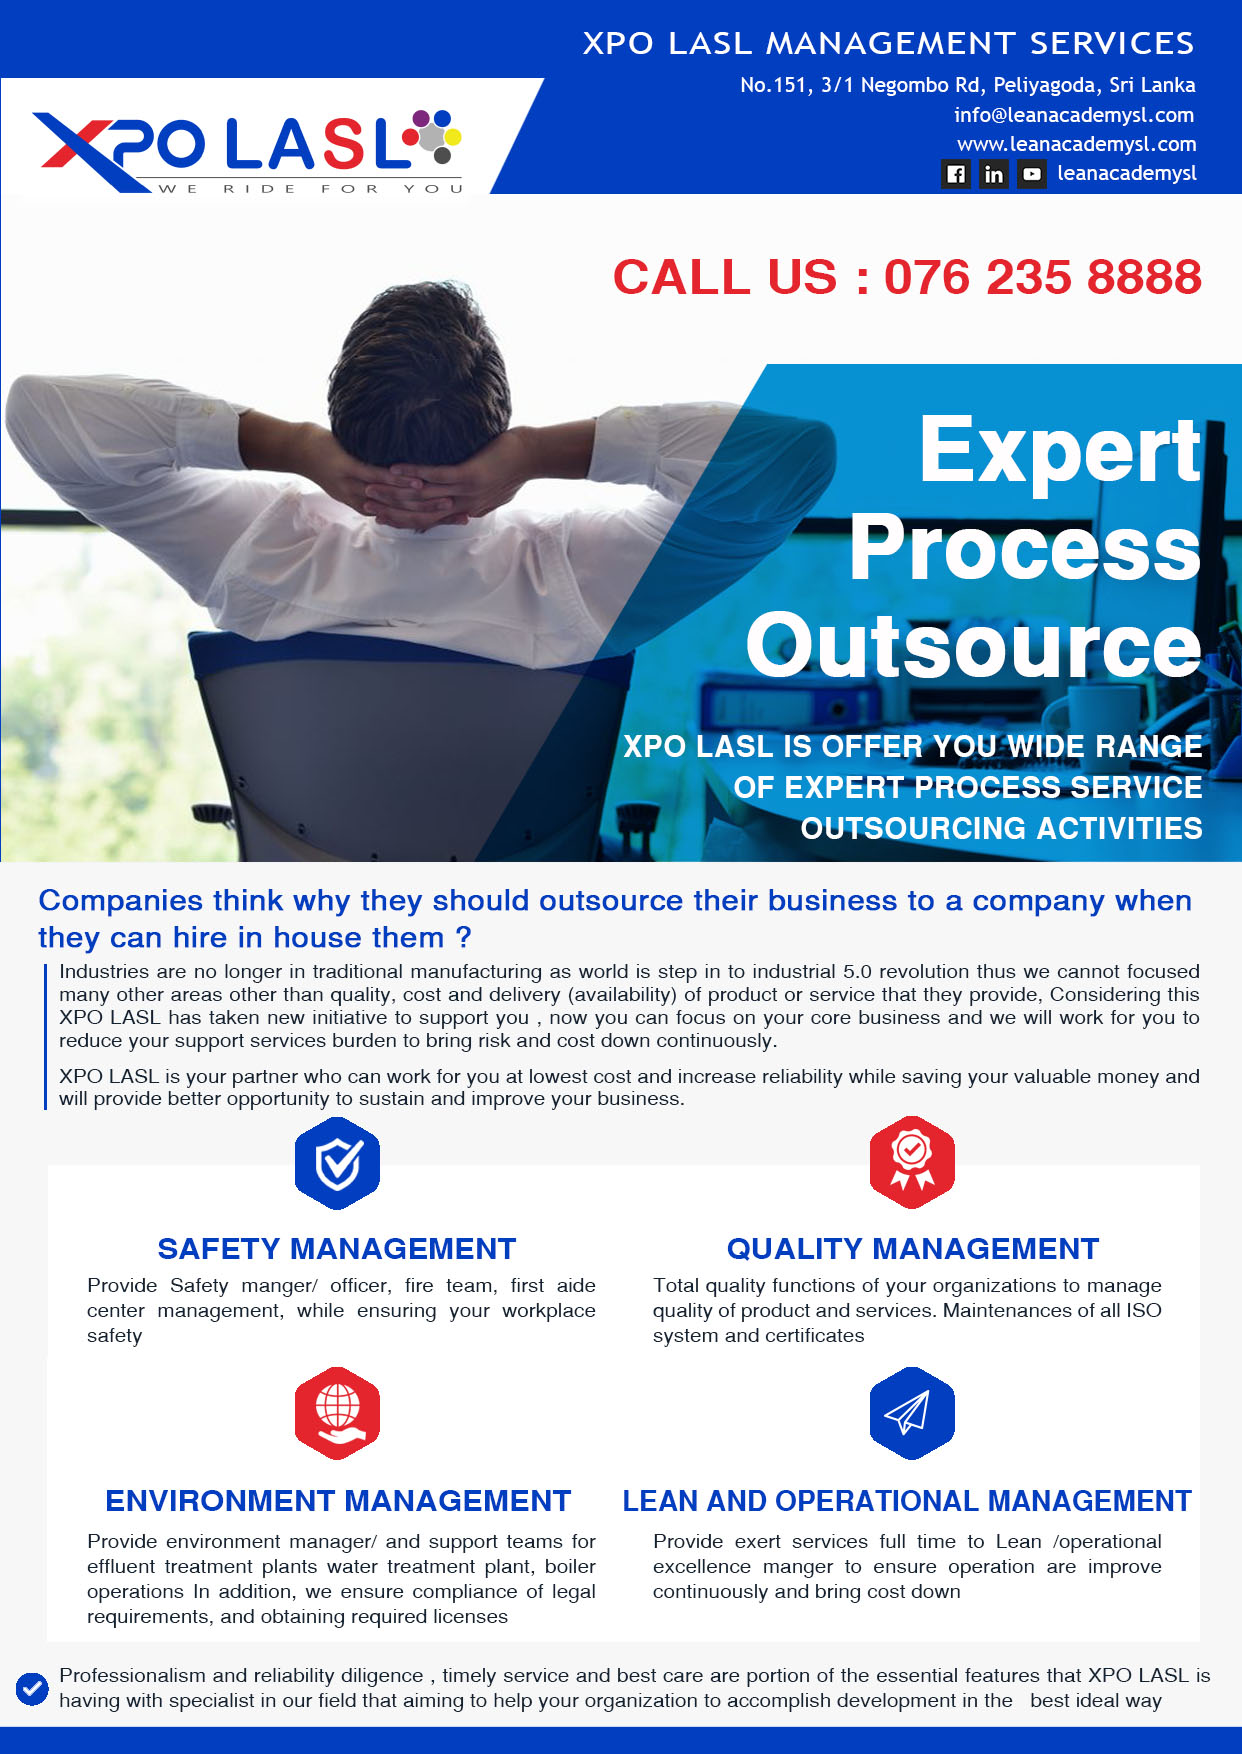 Xpo LASL introduce Expert Process Outsource Service